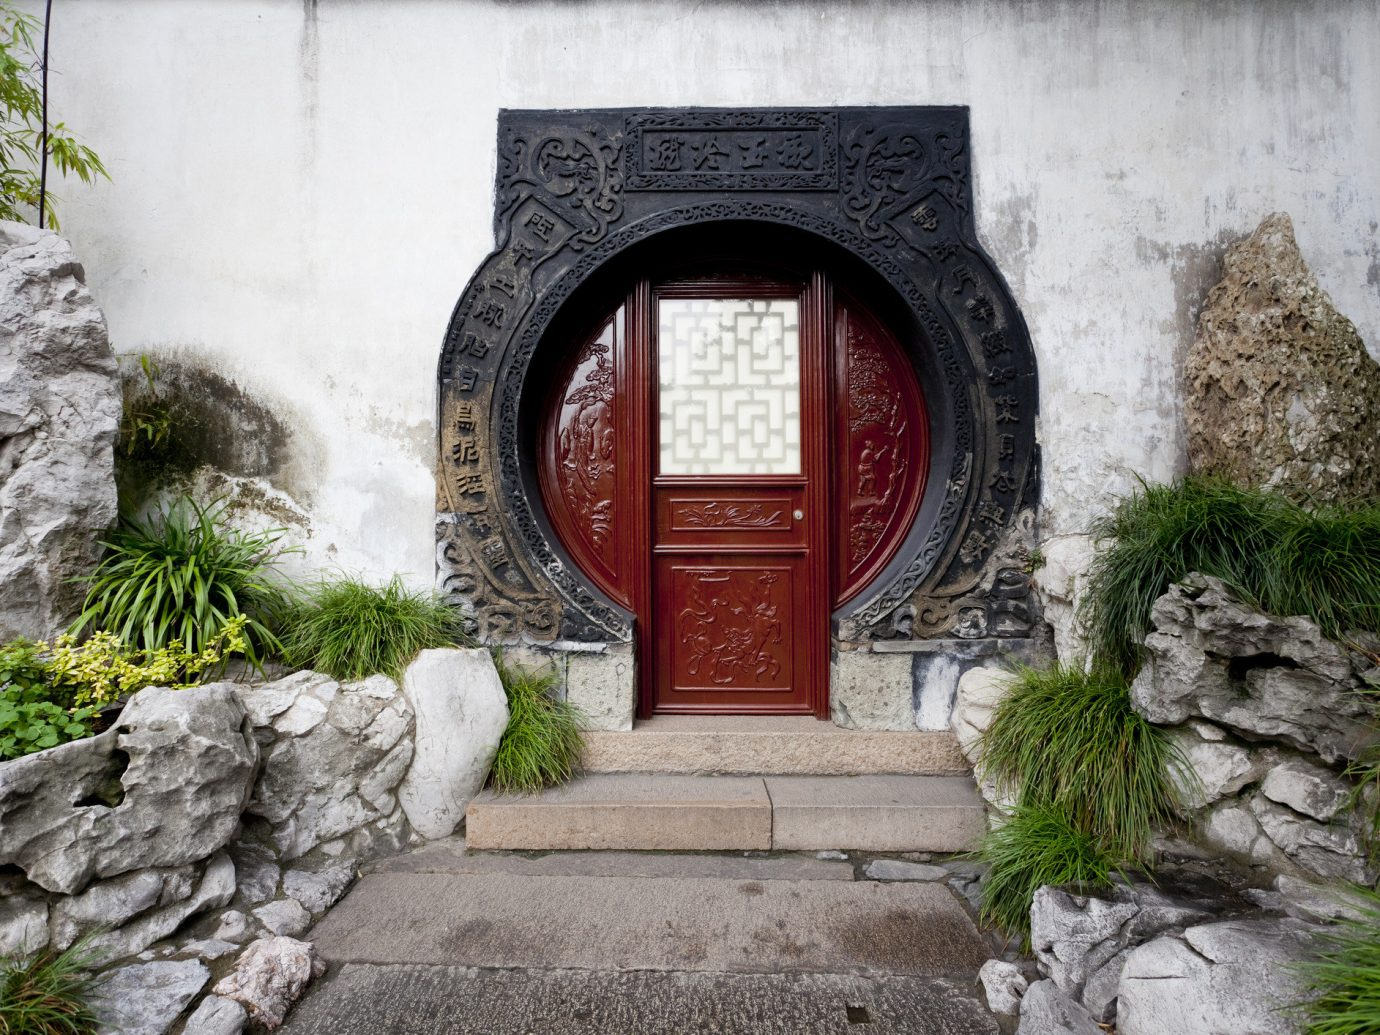 Offbeat outdoor building rock stone ground wall Architecture house arch ancient history Ruins monastery chapel temple door Courtyard window Garden shrine concrete cement